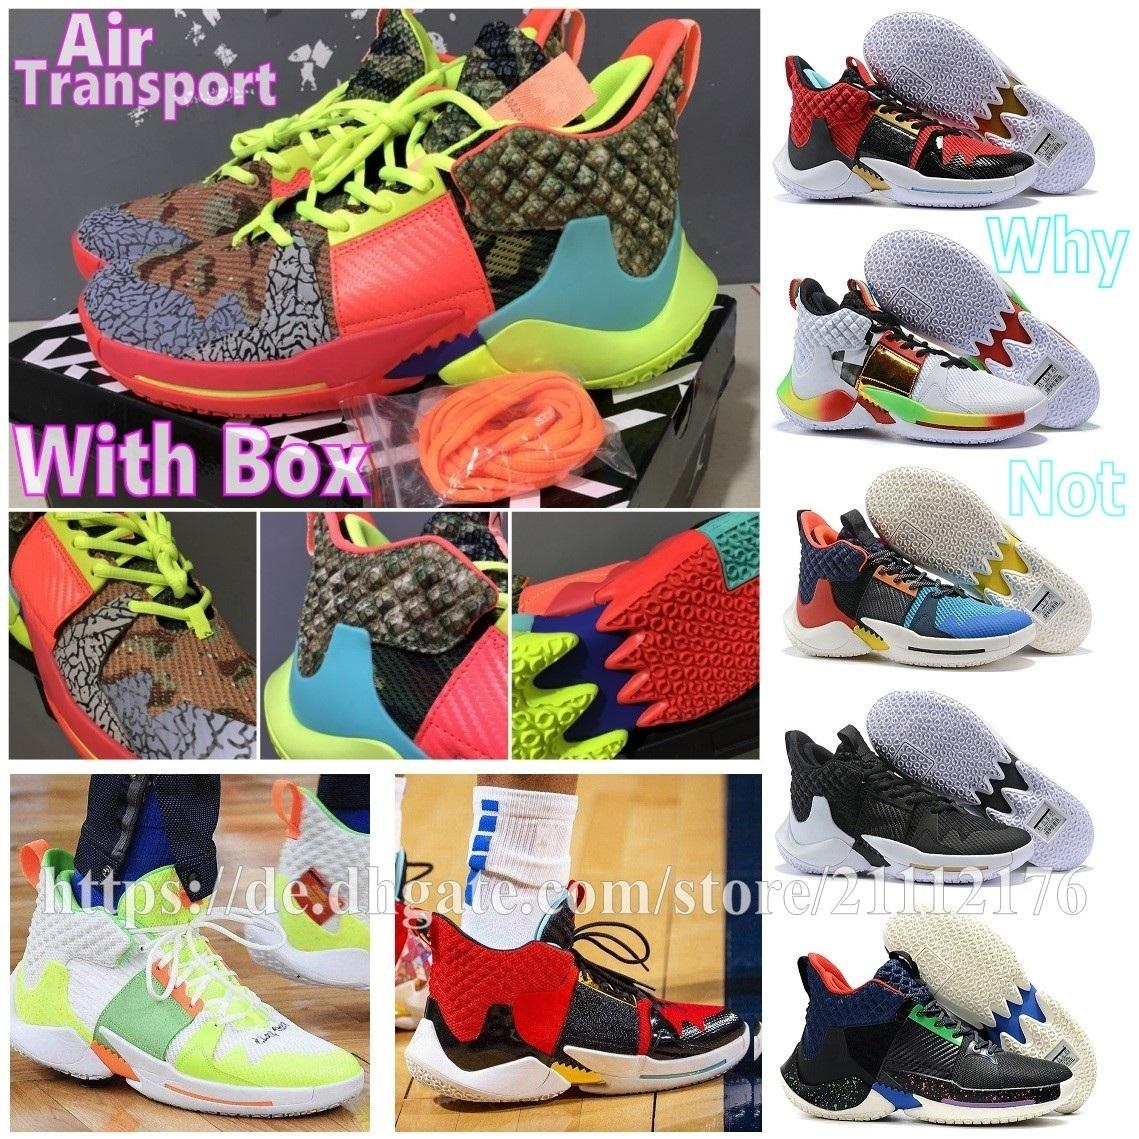 40-46 With High Quality Wholesale Price 2019 New Arrival Russell Westbrook Mens Basketball shoes sale why not zer02 sneakers store